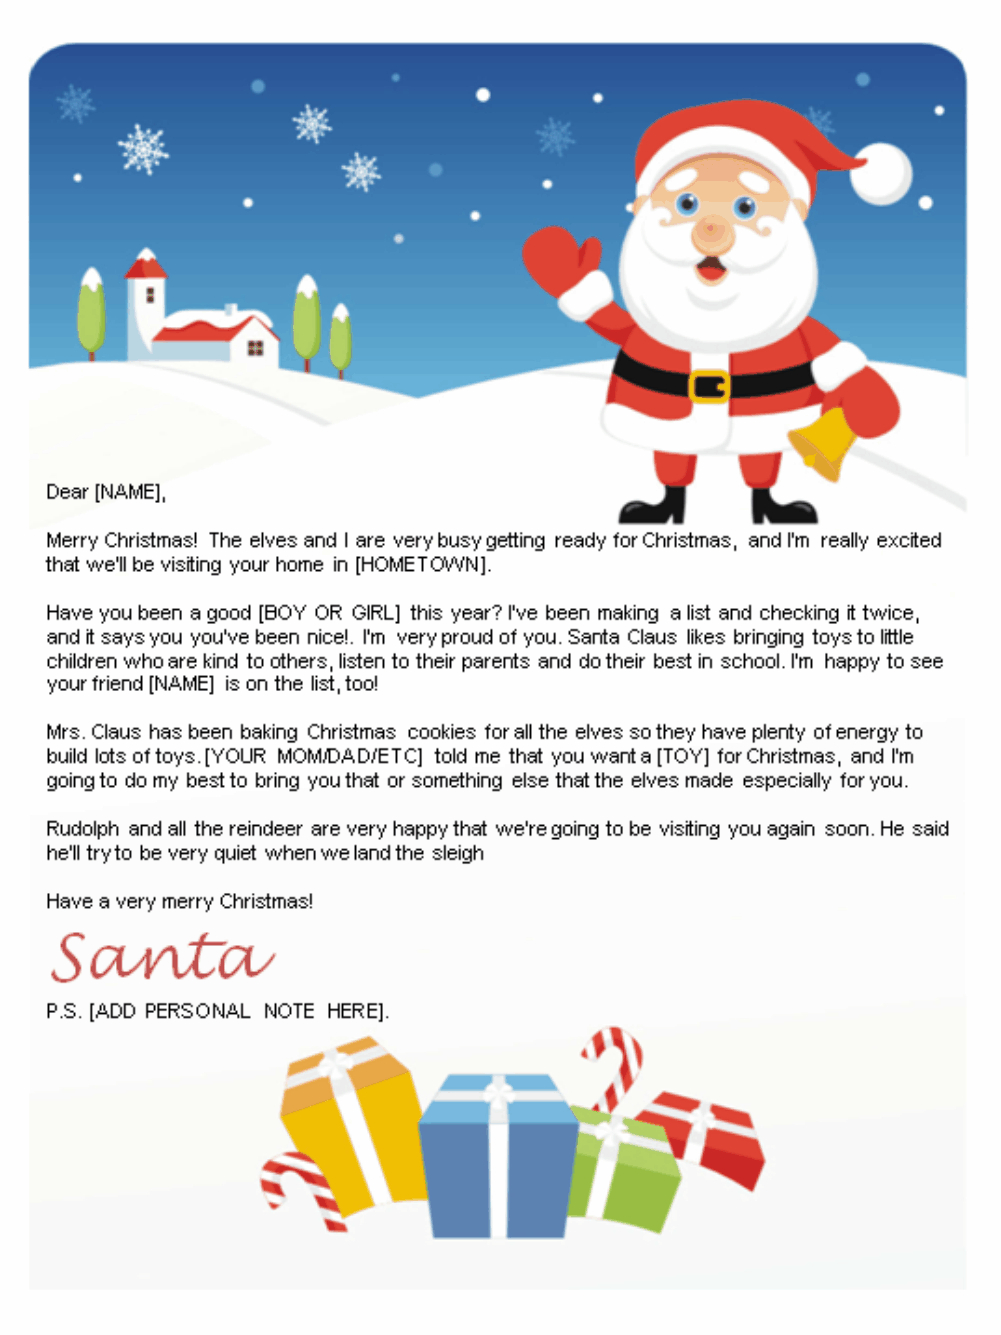 Free Letters From Santa | Santa Letters To Print At Home - Gifts - Free Personalized Printable Letters From Santa Claus